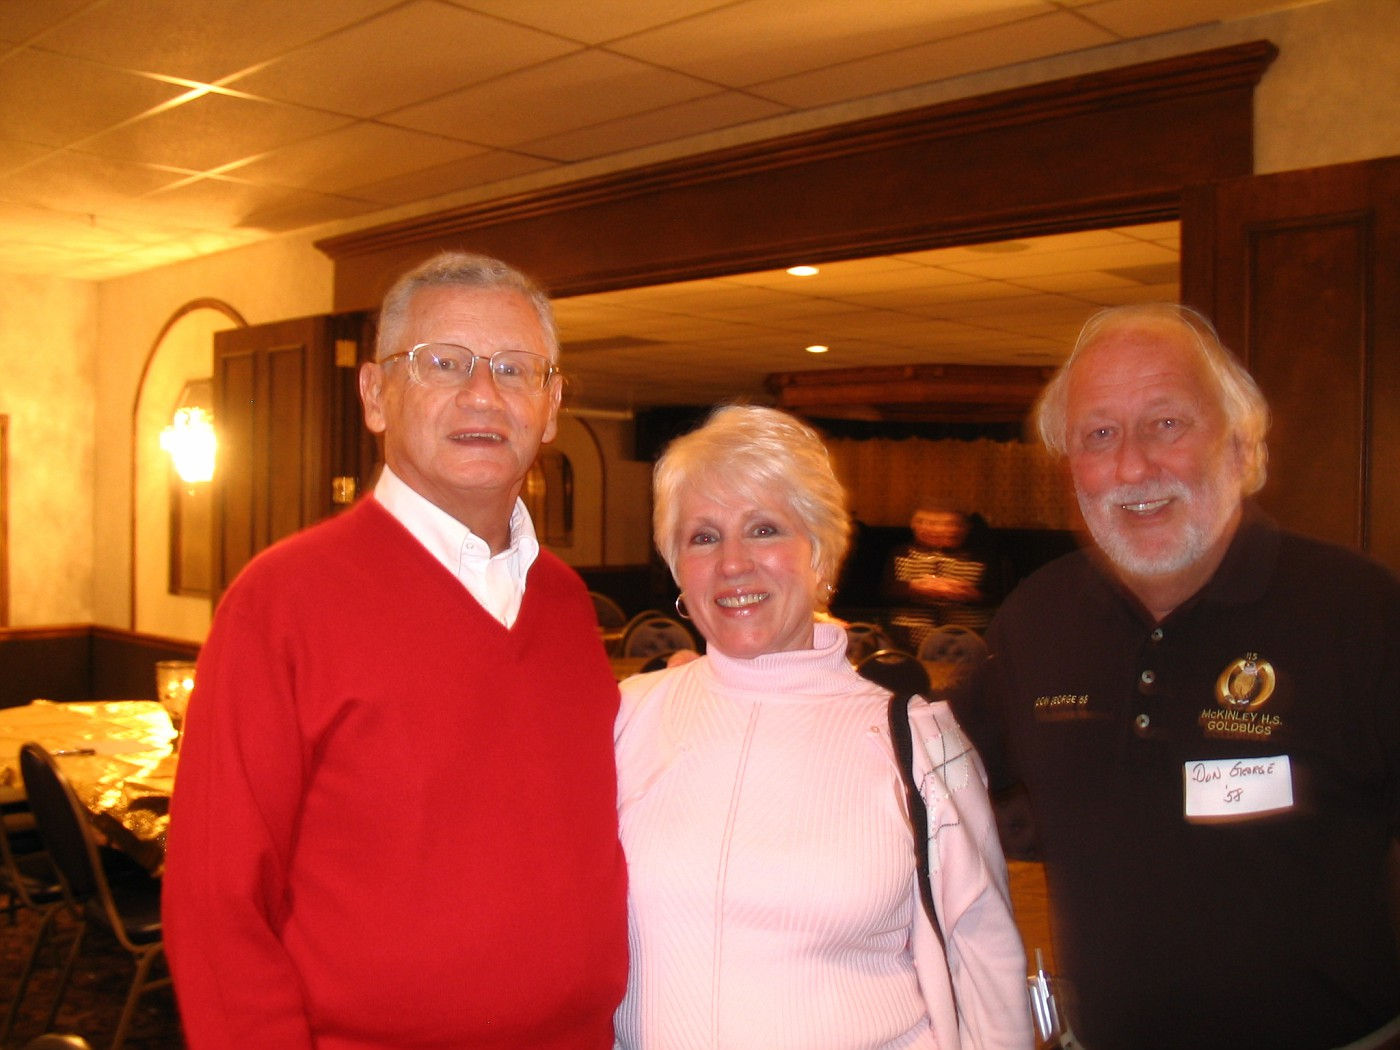 Lou Lewis, Opal Campbell, Don George